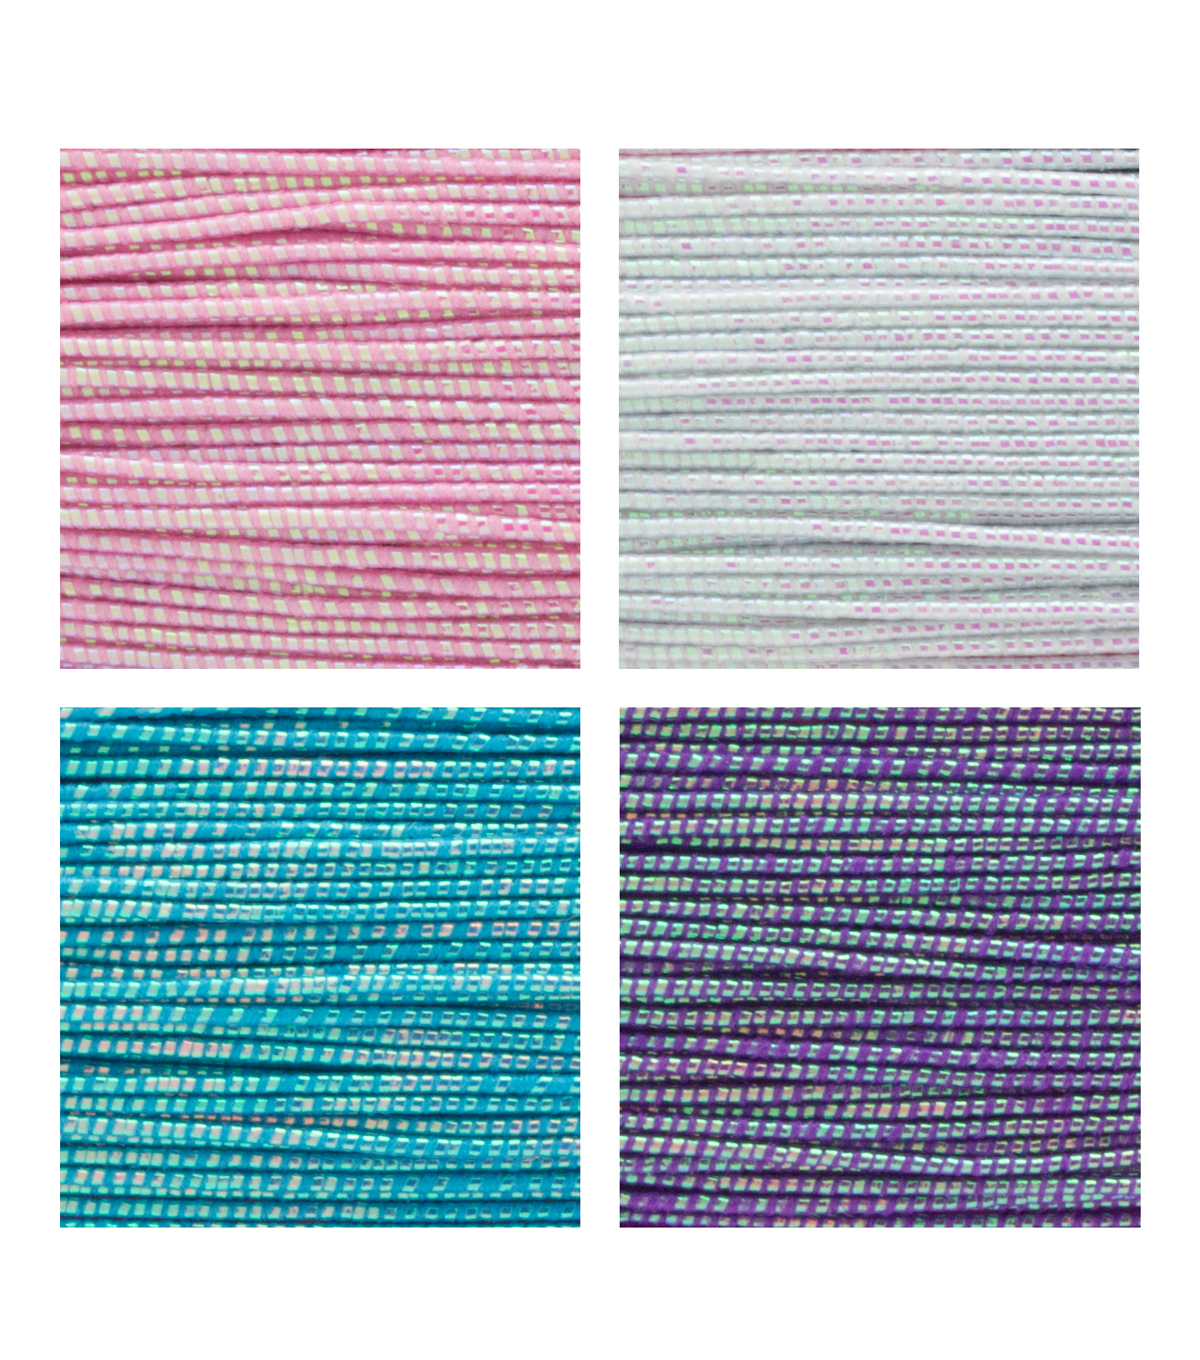 LaurDIY 4 pk 40 yds Stretch Cords-Iridescent